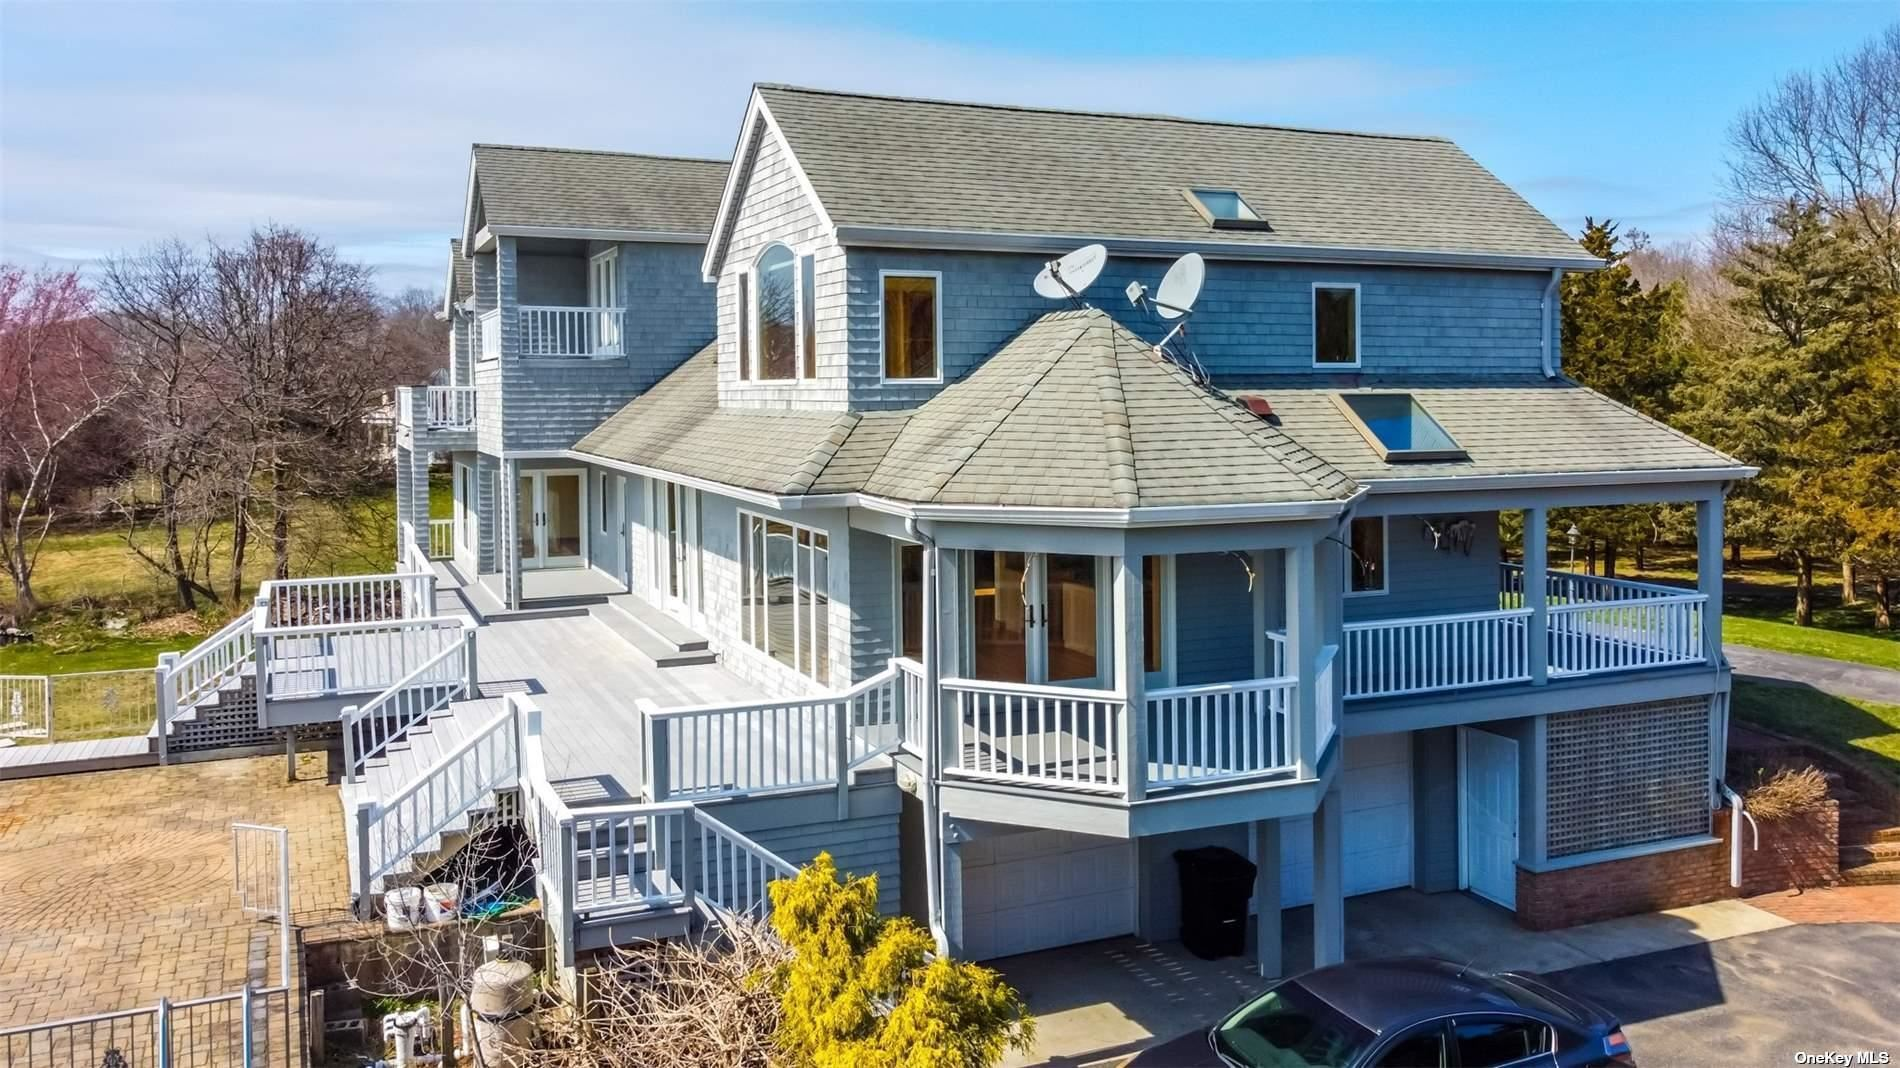 26 Old Neck Road S, Center Moriches, NY 11934 - MLS#: 3300857